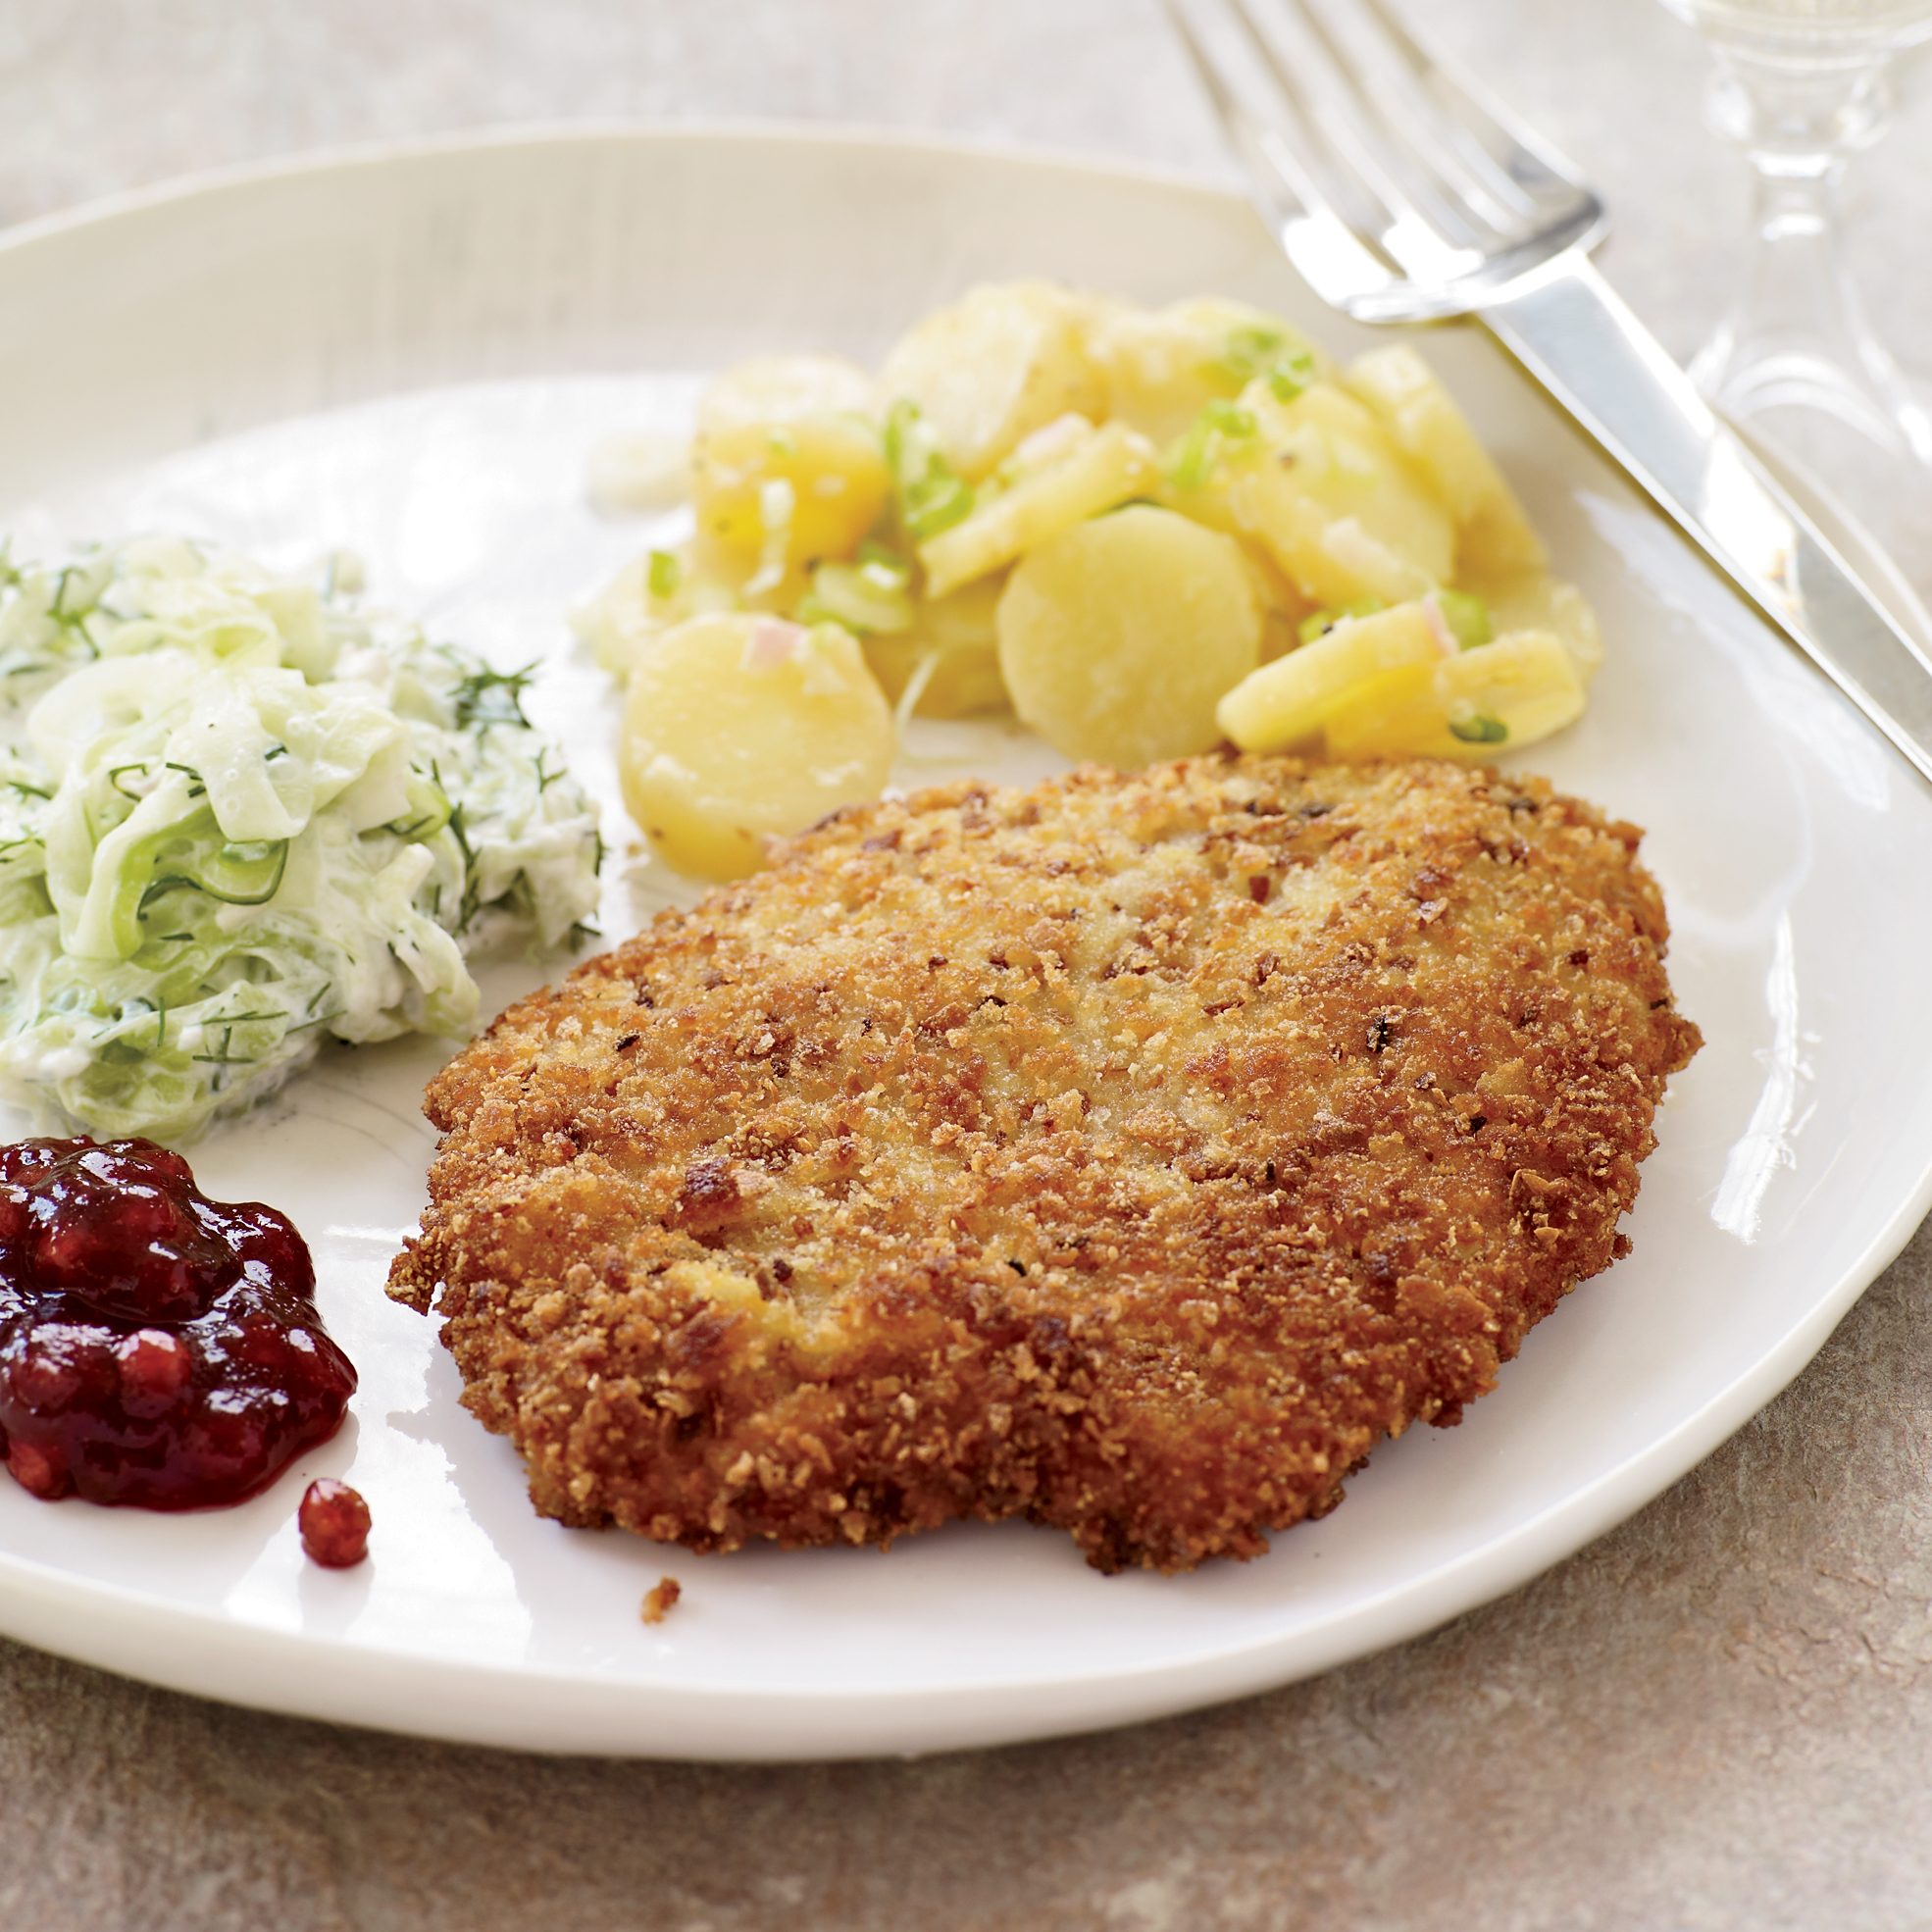 Crispy Wiener Schnitzel with Lingonberry Preserves